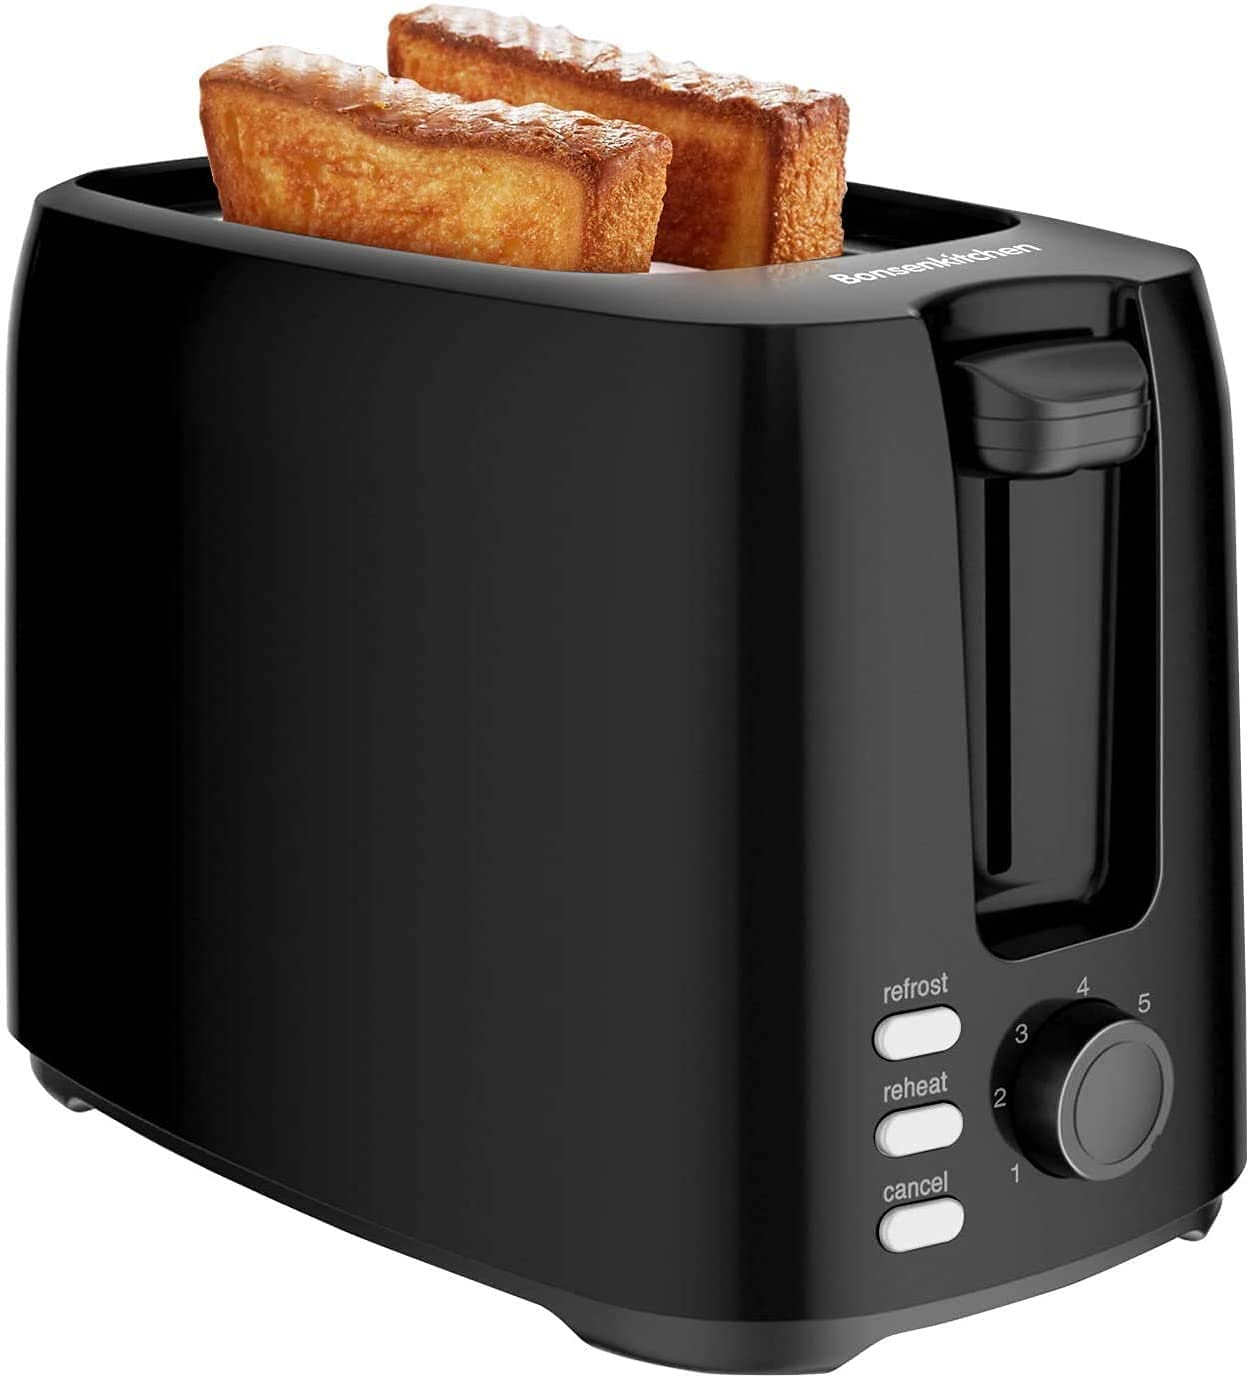 Bonsenkitchen 2 Slices Retro Toaster with 7 Browning Levels and Crumb Tray, 750W, Auto Pop-up Toaster with Defrosting and Warming up Function, Black Compact Toaster